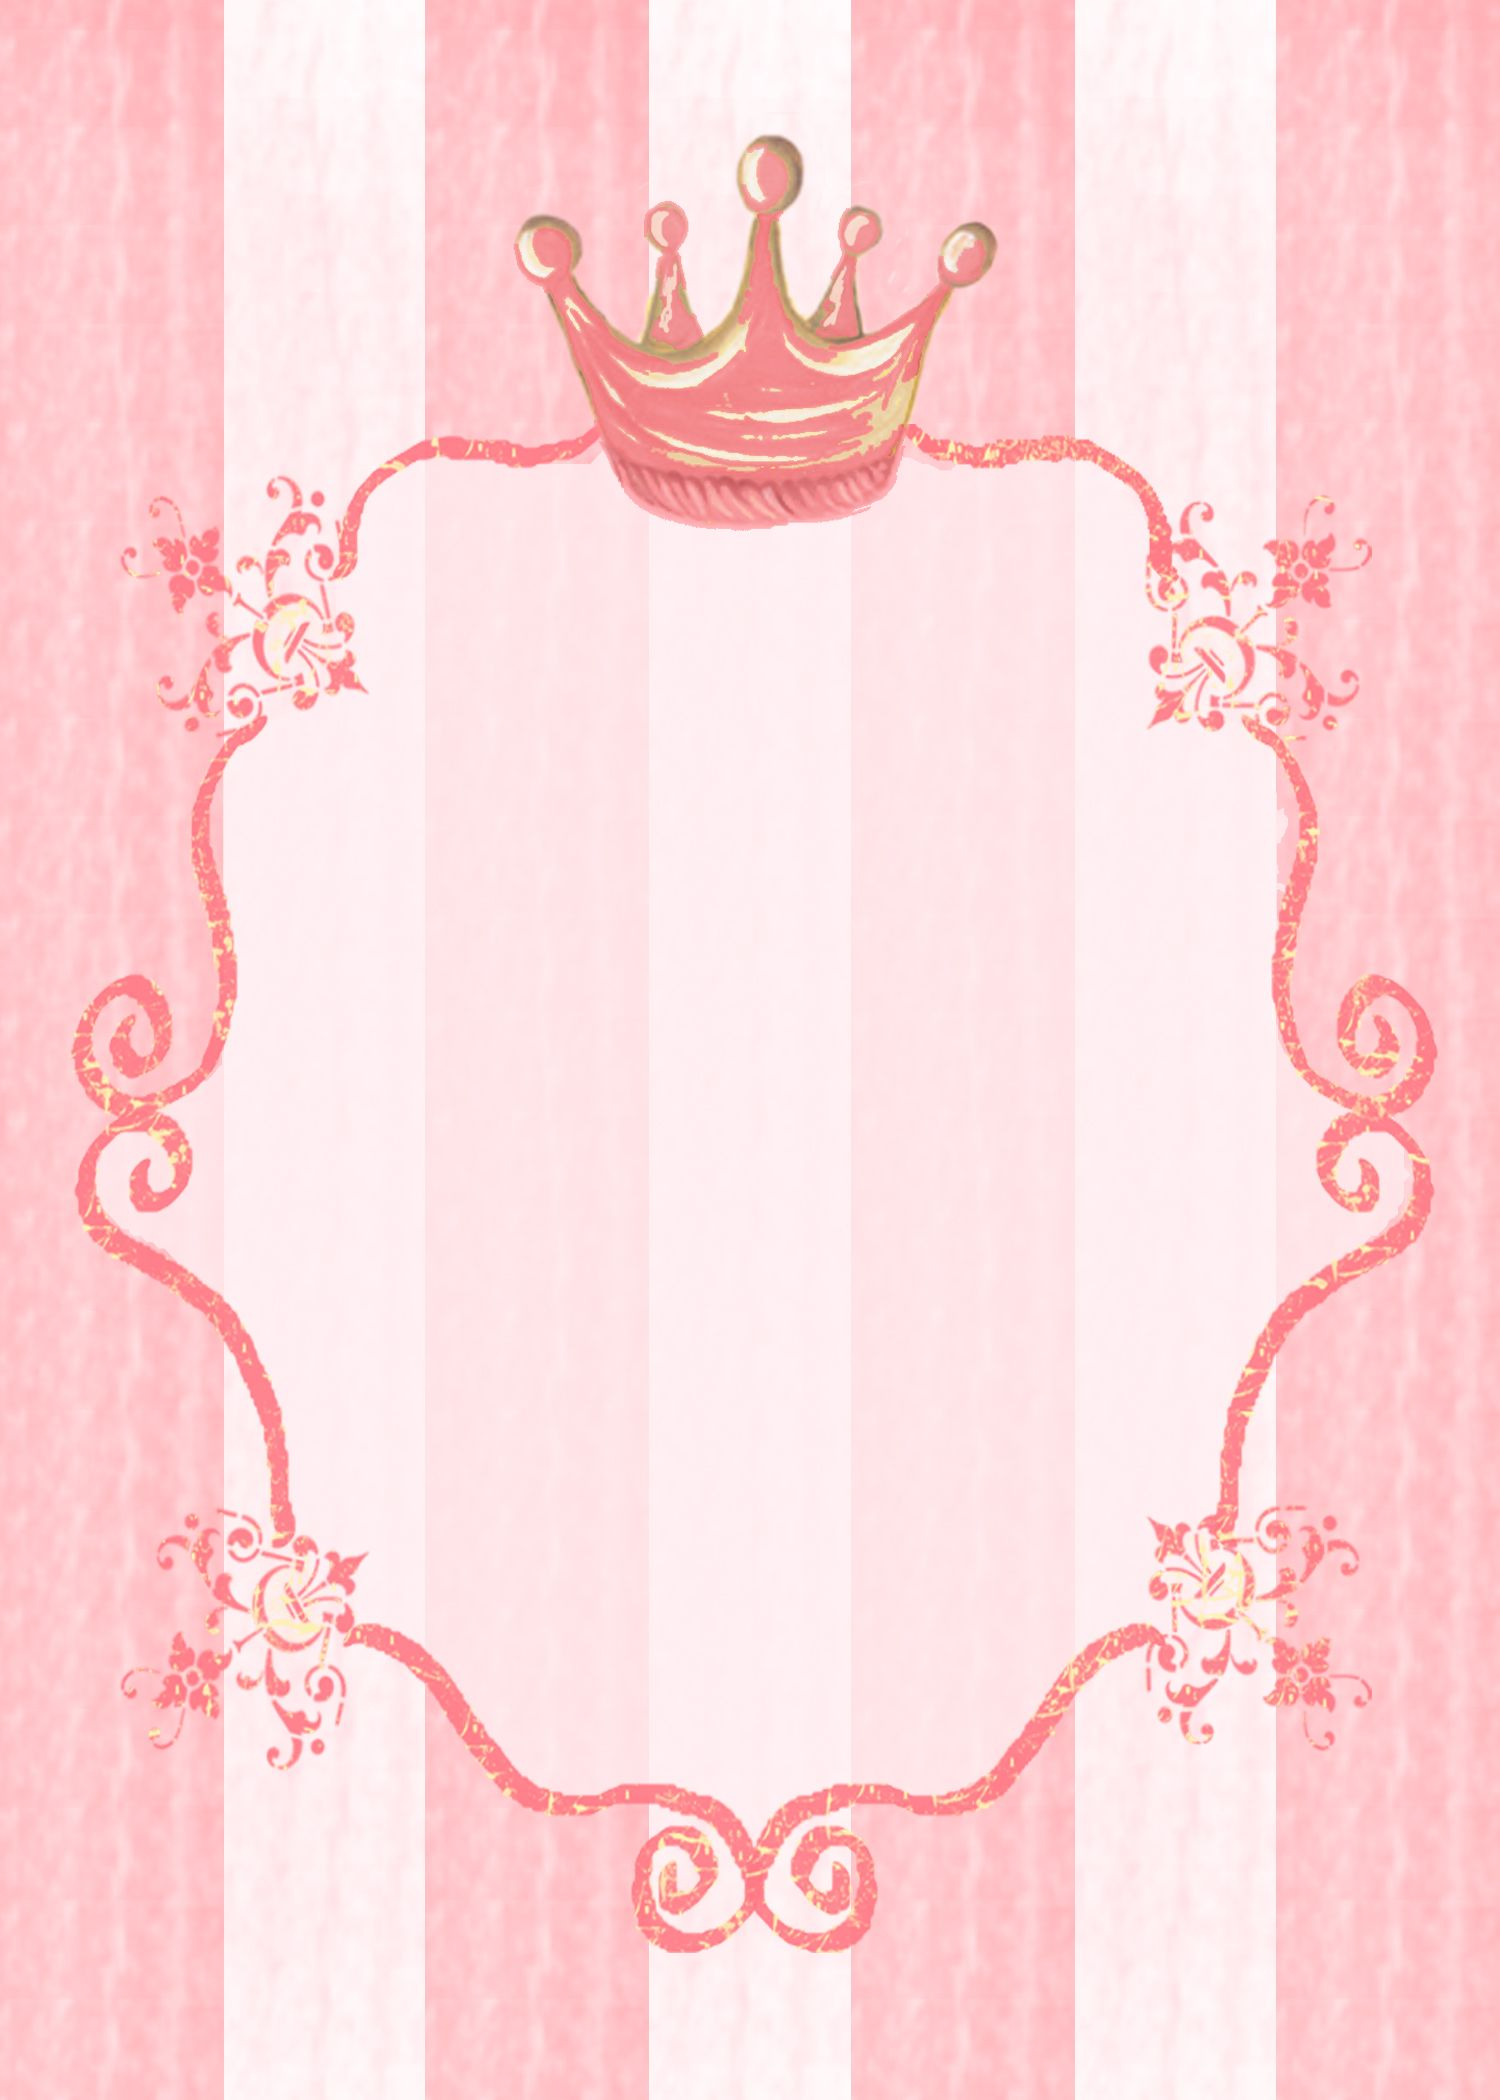 Pink Vintage Border Templates #princess party invita...